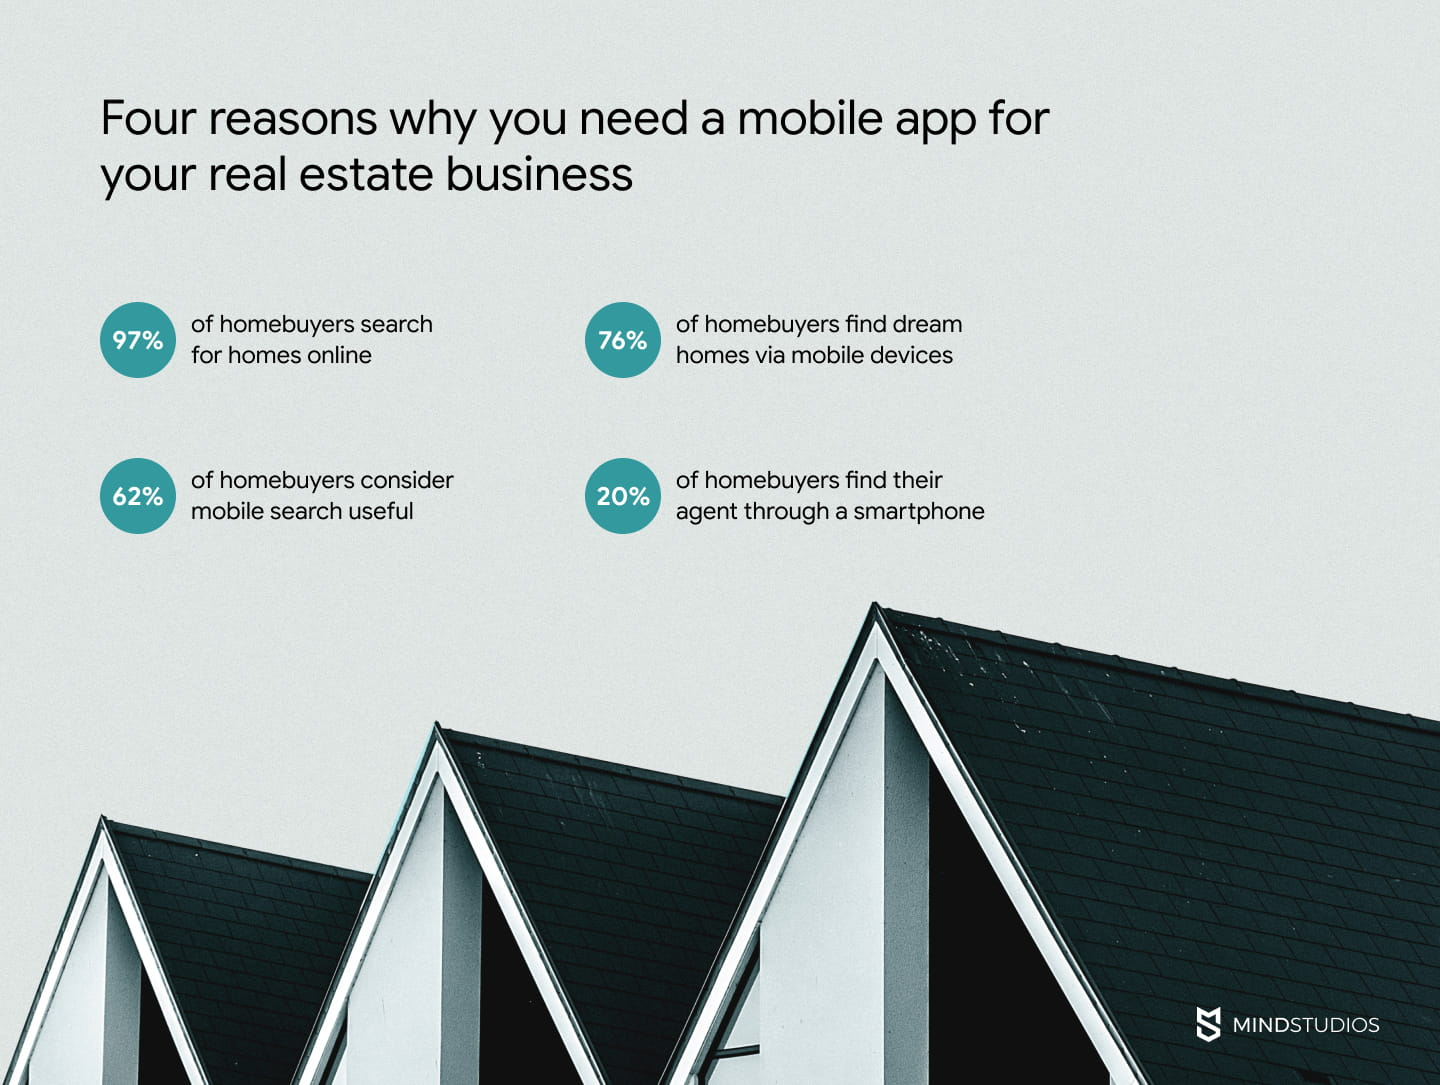 Reasons why you need a mobile app for your real estate business